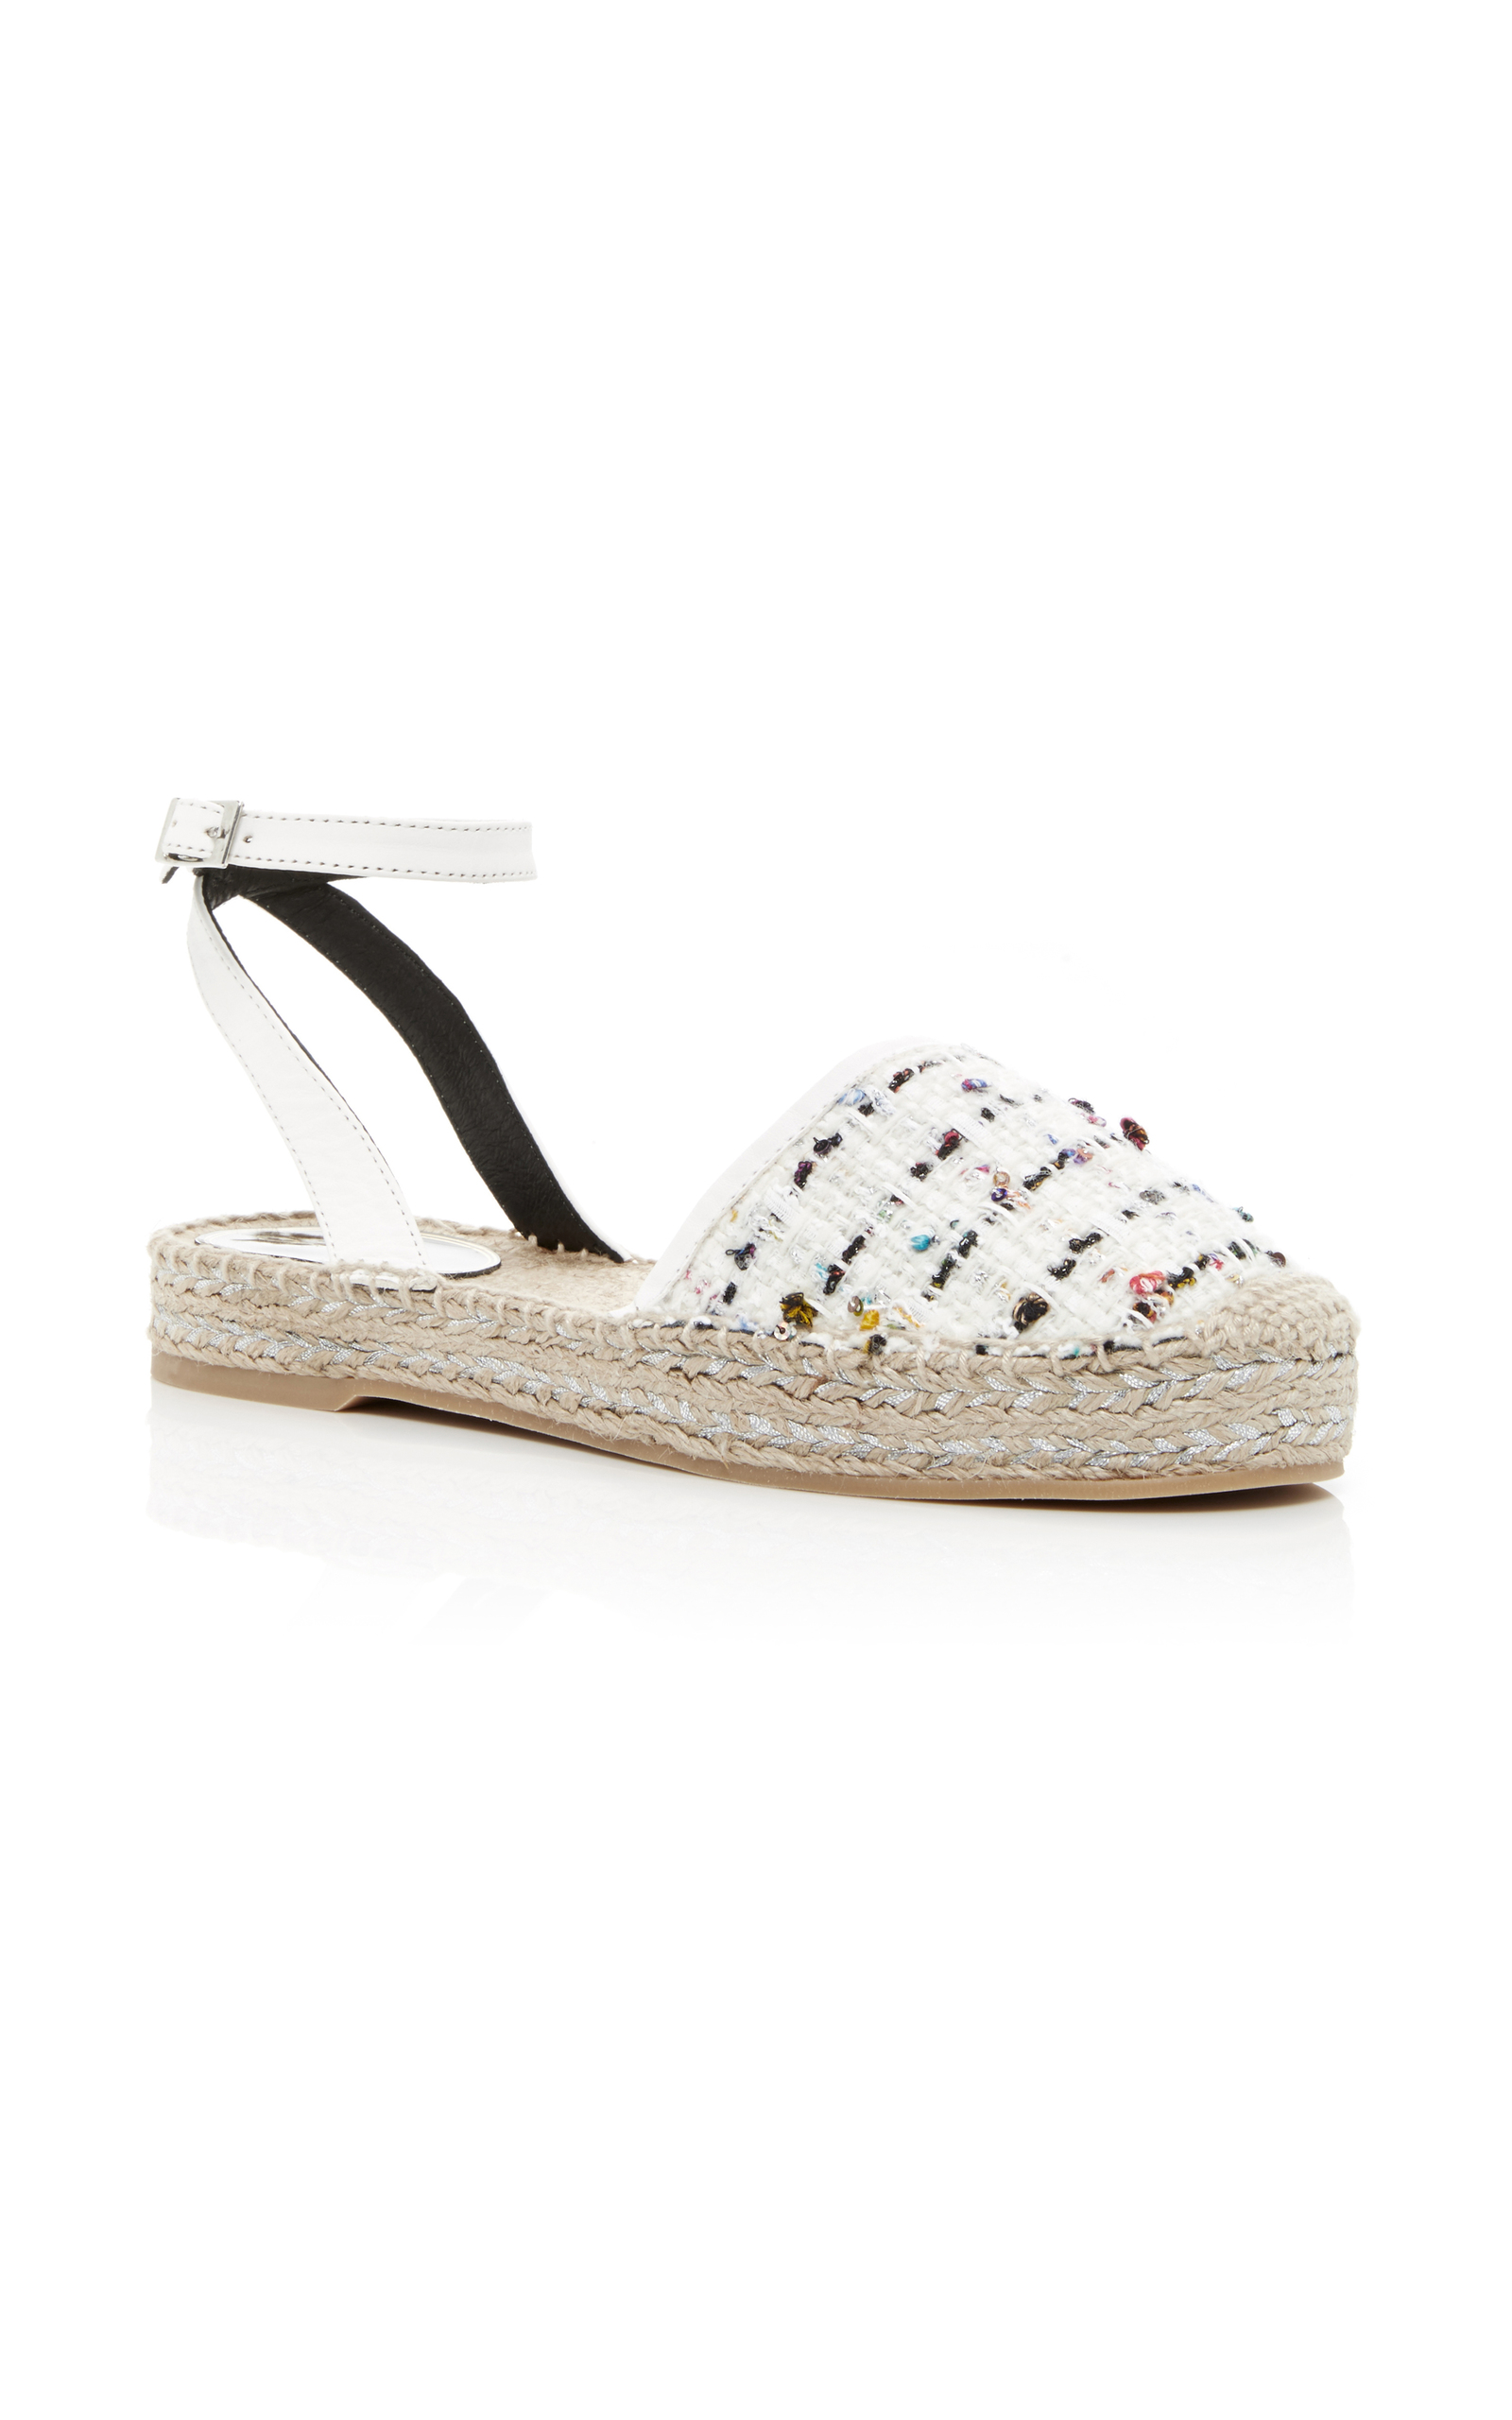 Oscar de la Renta Tweed Espadrille Wedges from china free shipping low price Lyt3uuoSQ